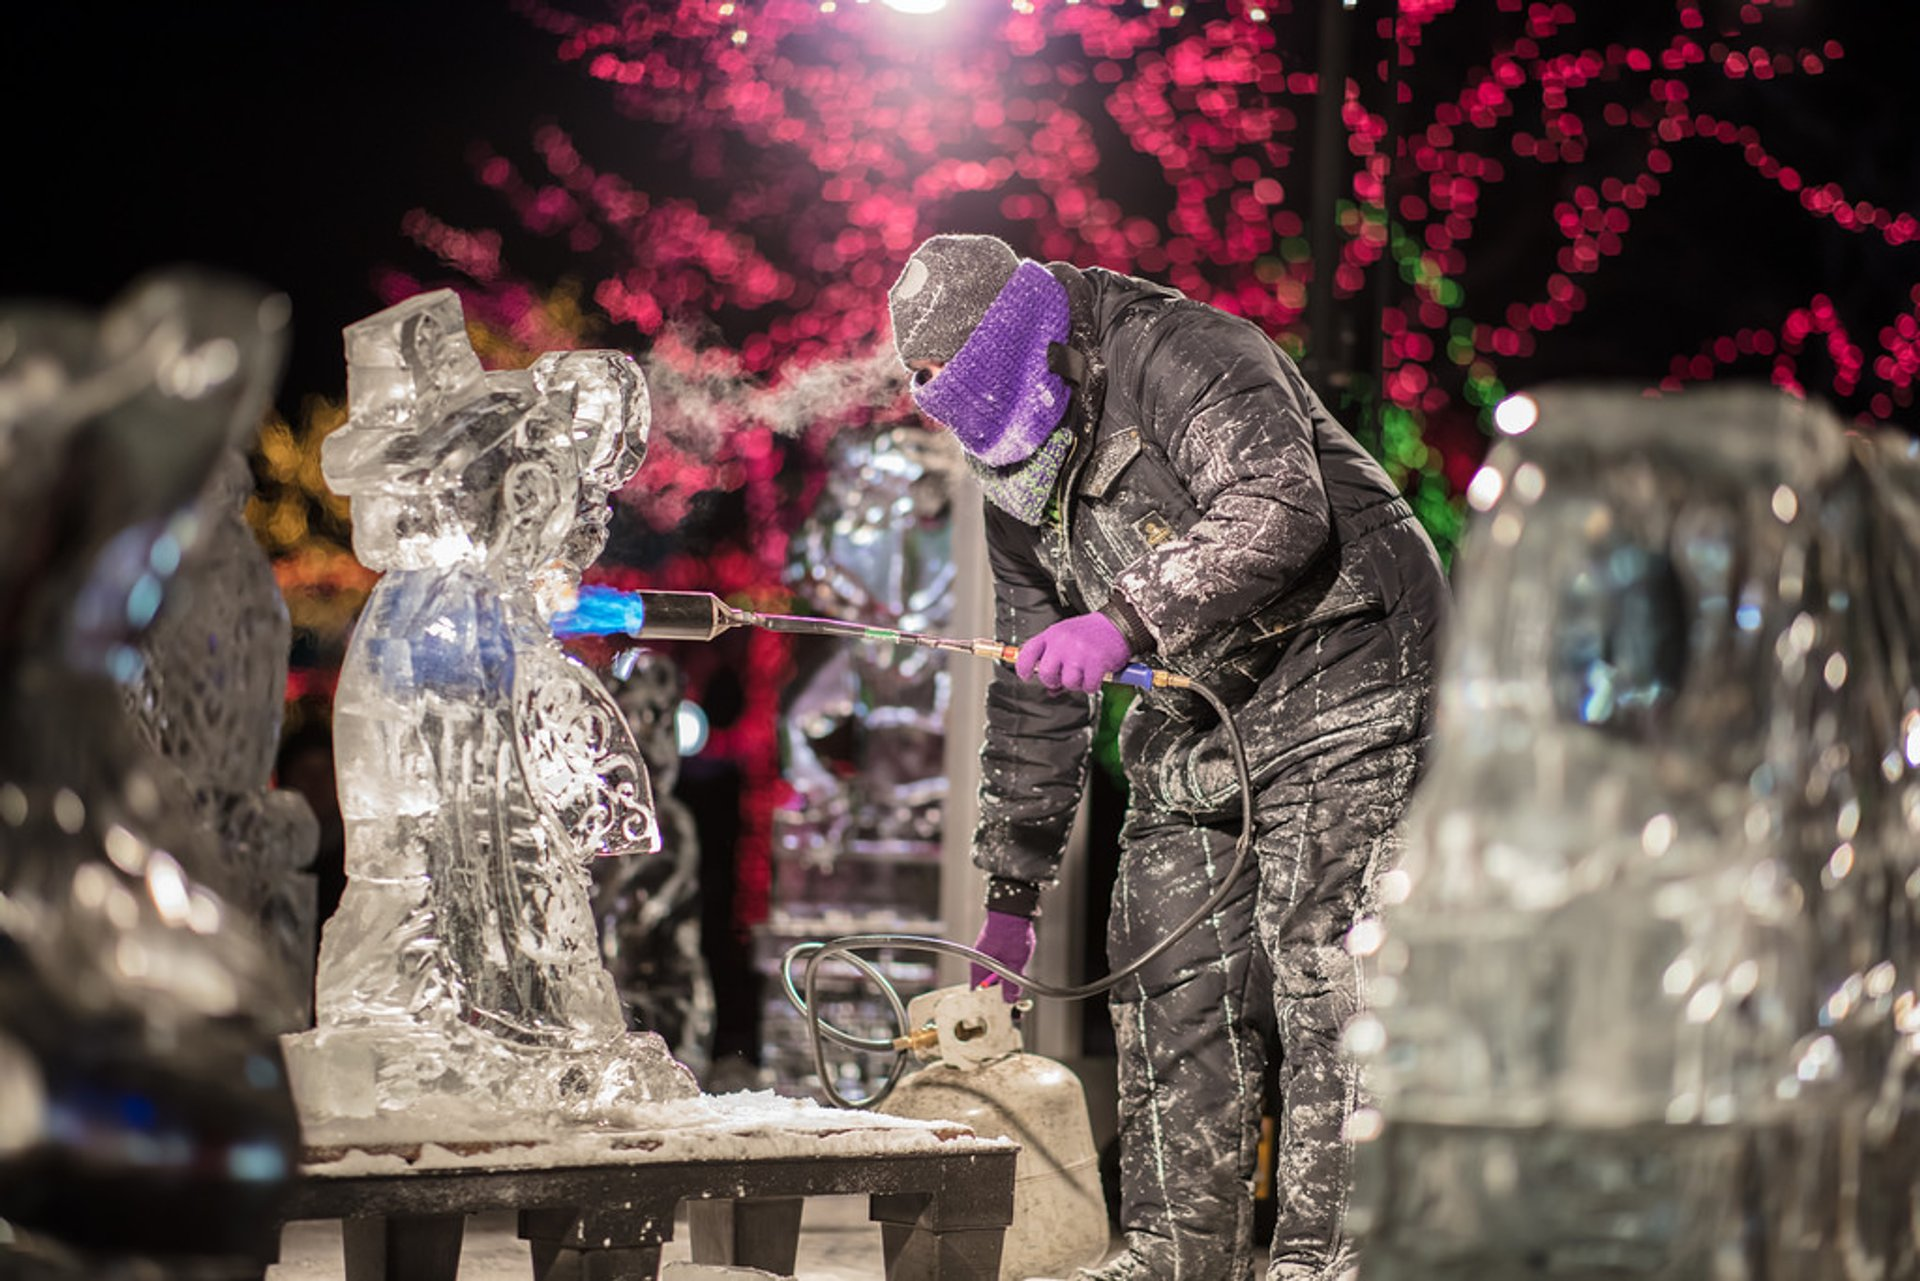 Zoolights Ice Sculptures Show in Lincoln Park Zoo 2019